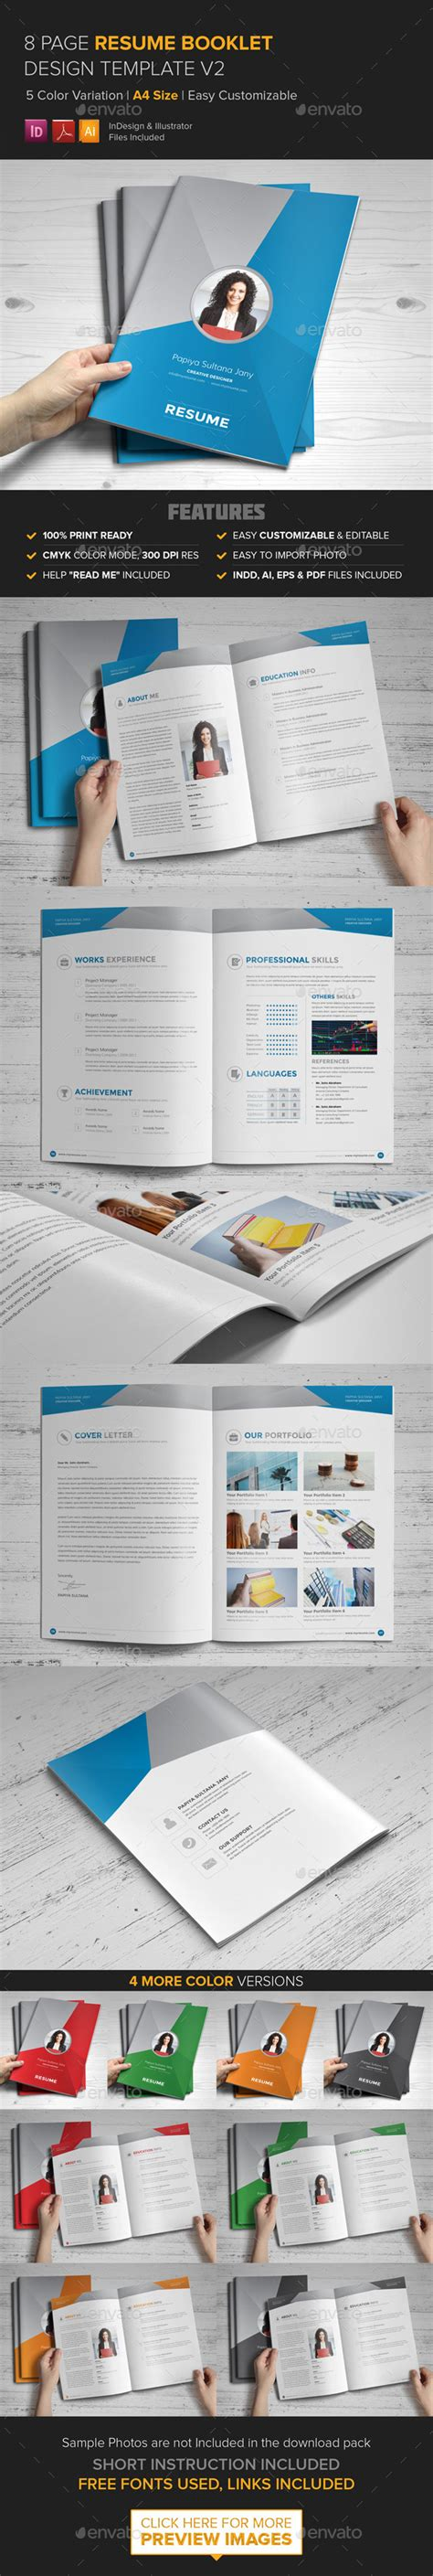 Indesign 8 Page Booklet Template 187 Tinkytyler Org Stock Photos Graphics 8 Page Booklet Template Indesign